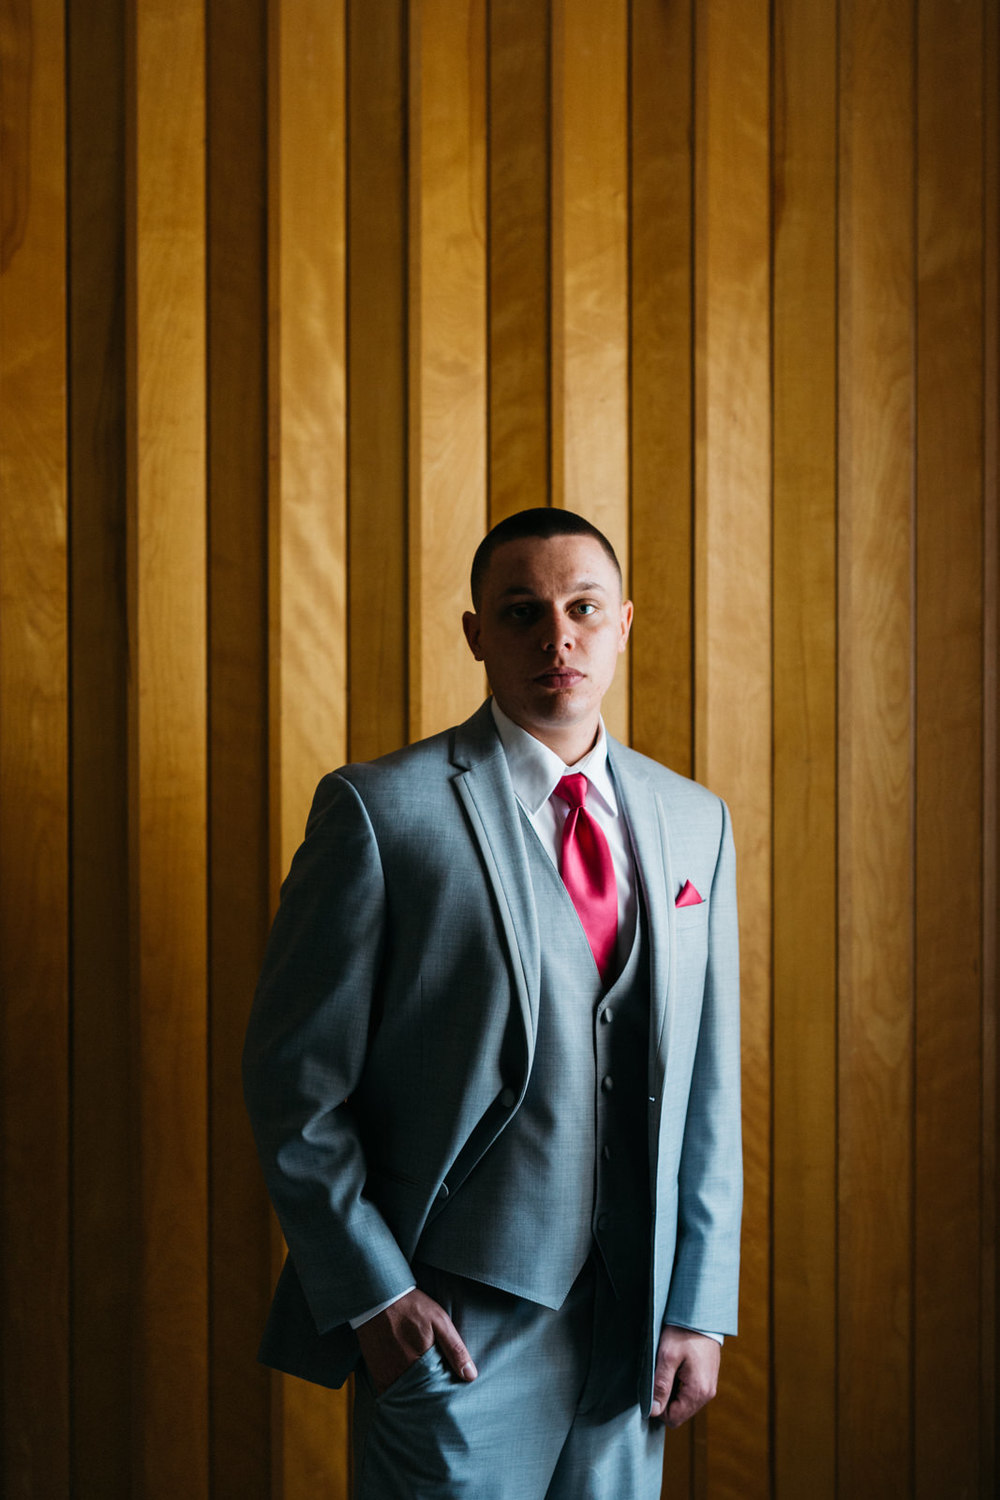 Groom photography at Wauseon, Ohio wedding